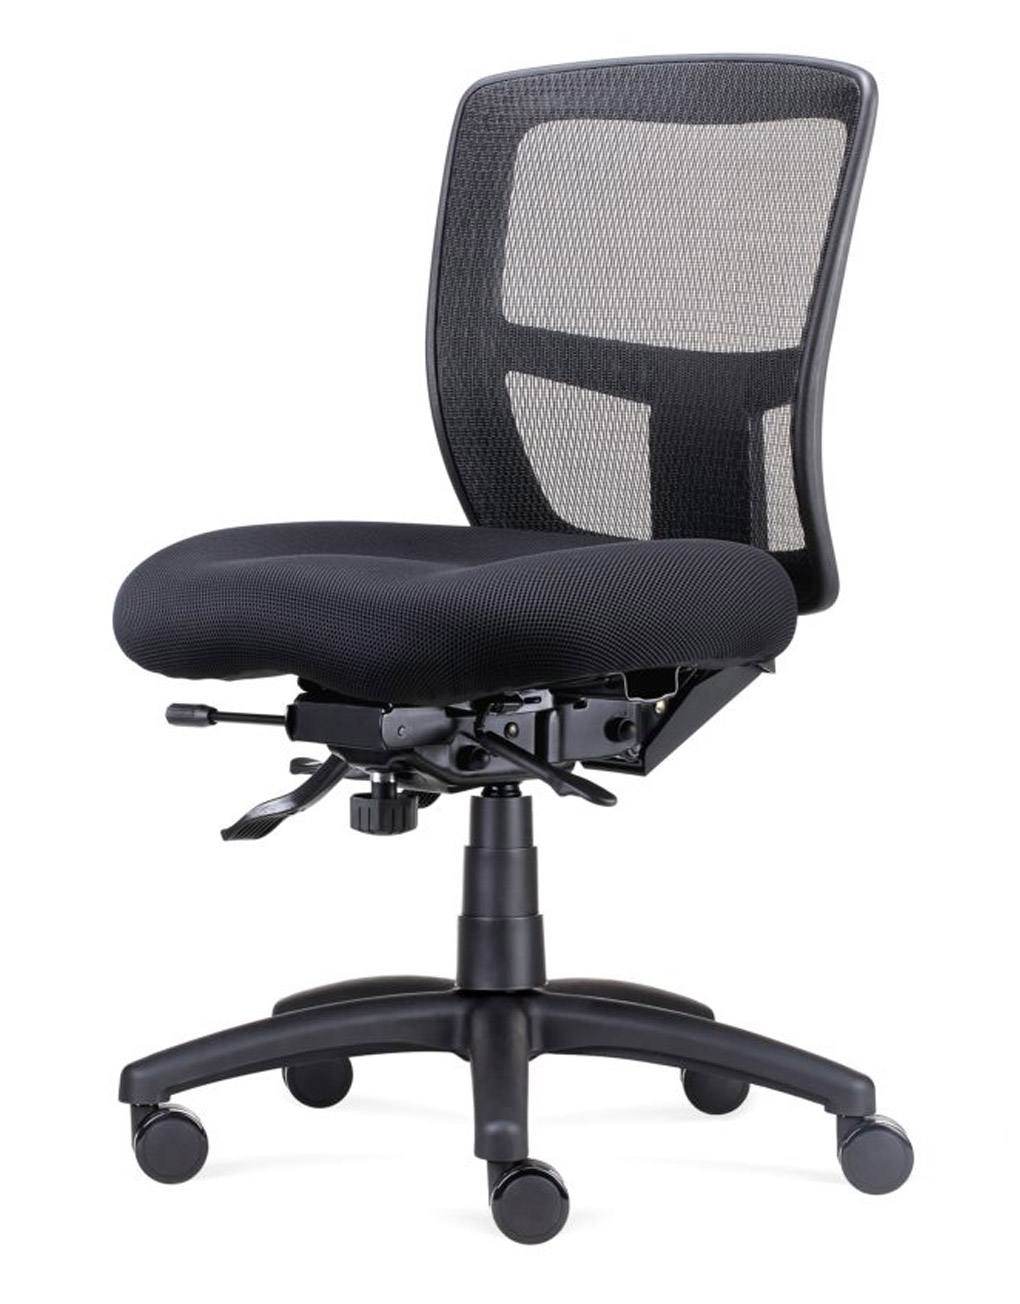 Office Chairs Canberra Epic Office Furniture Best Range Lowest Prices Free Metro